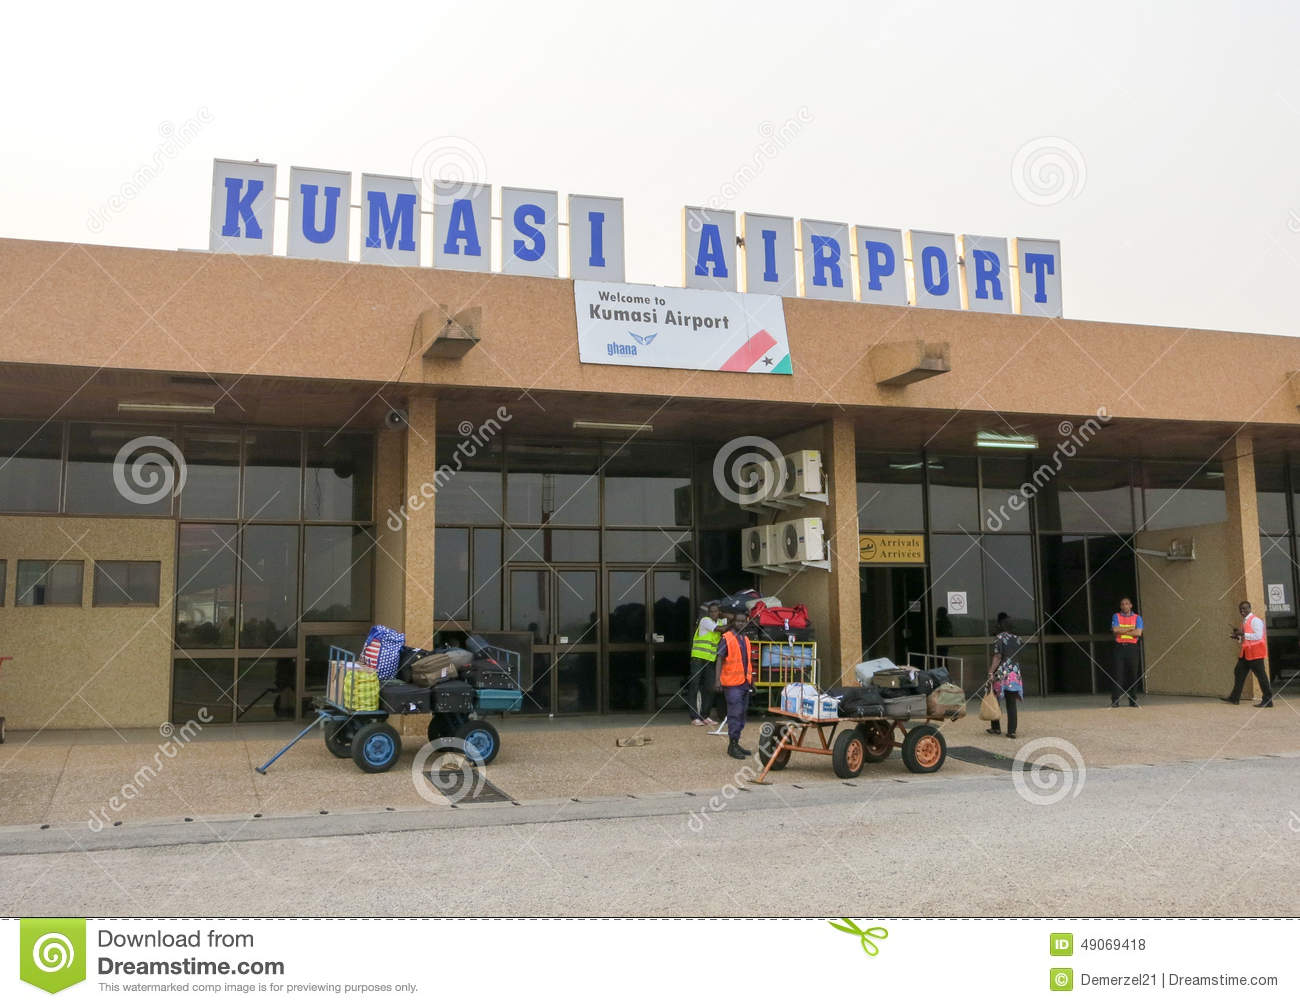 Kumasi airport upgrade stalled | Africatime